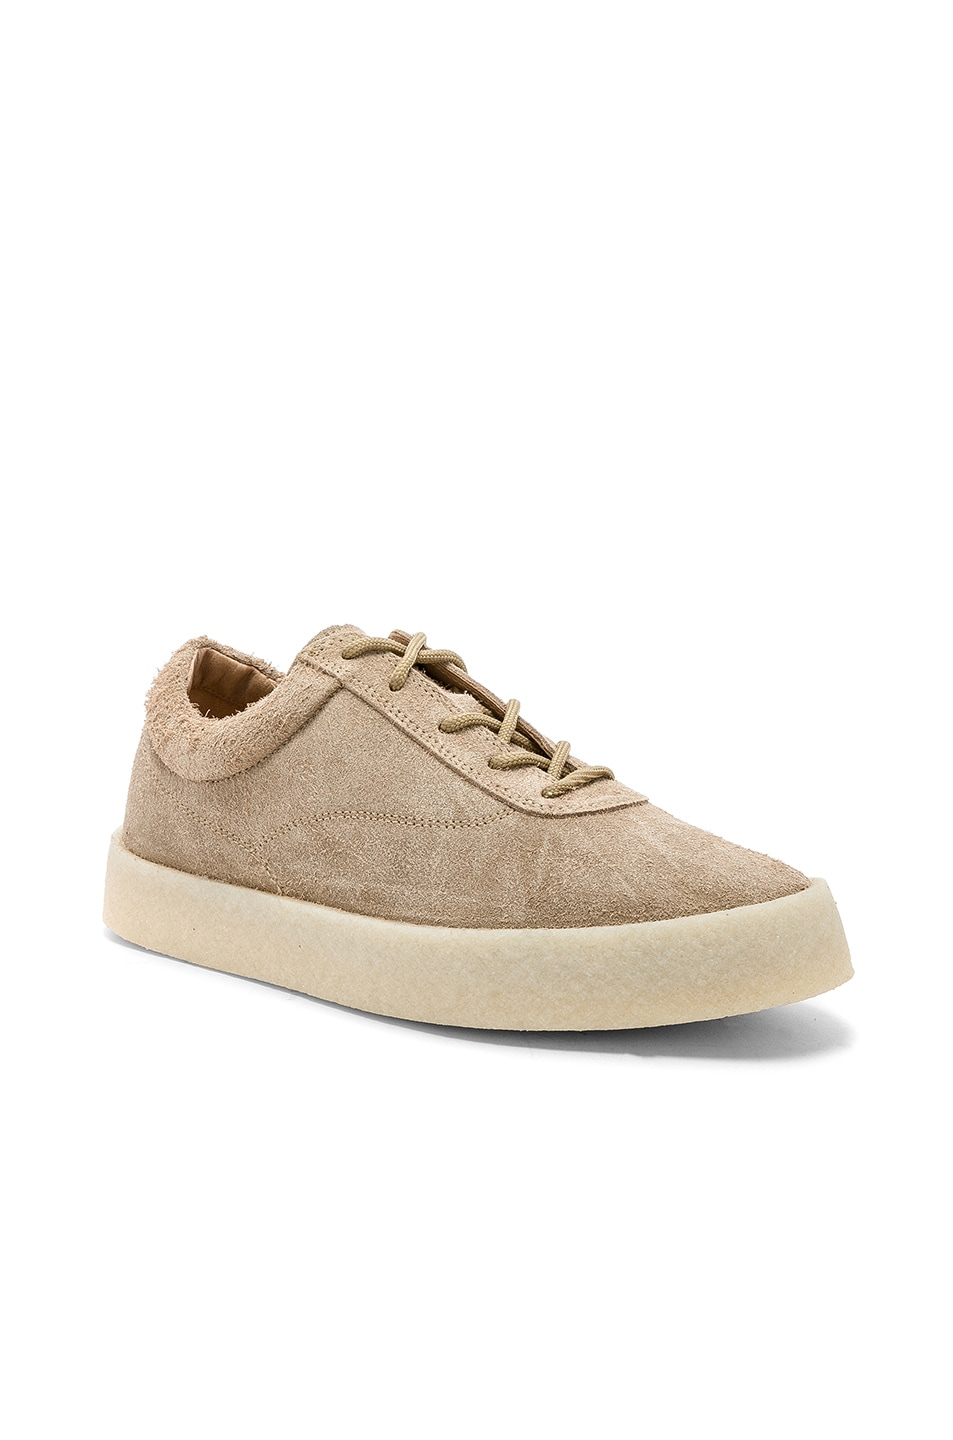 e41c82a4b77d7 Image 1 of YEEZY Season 6 Crepe Sneaker in Taupe